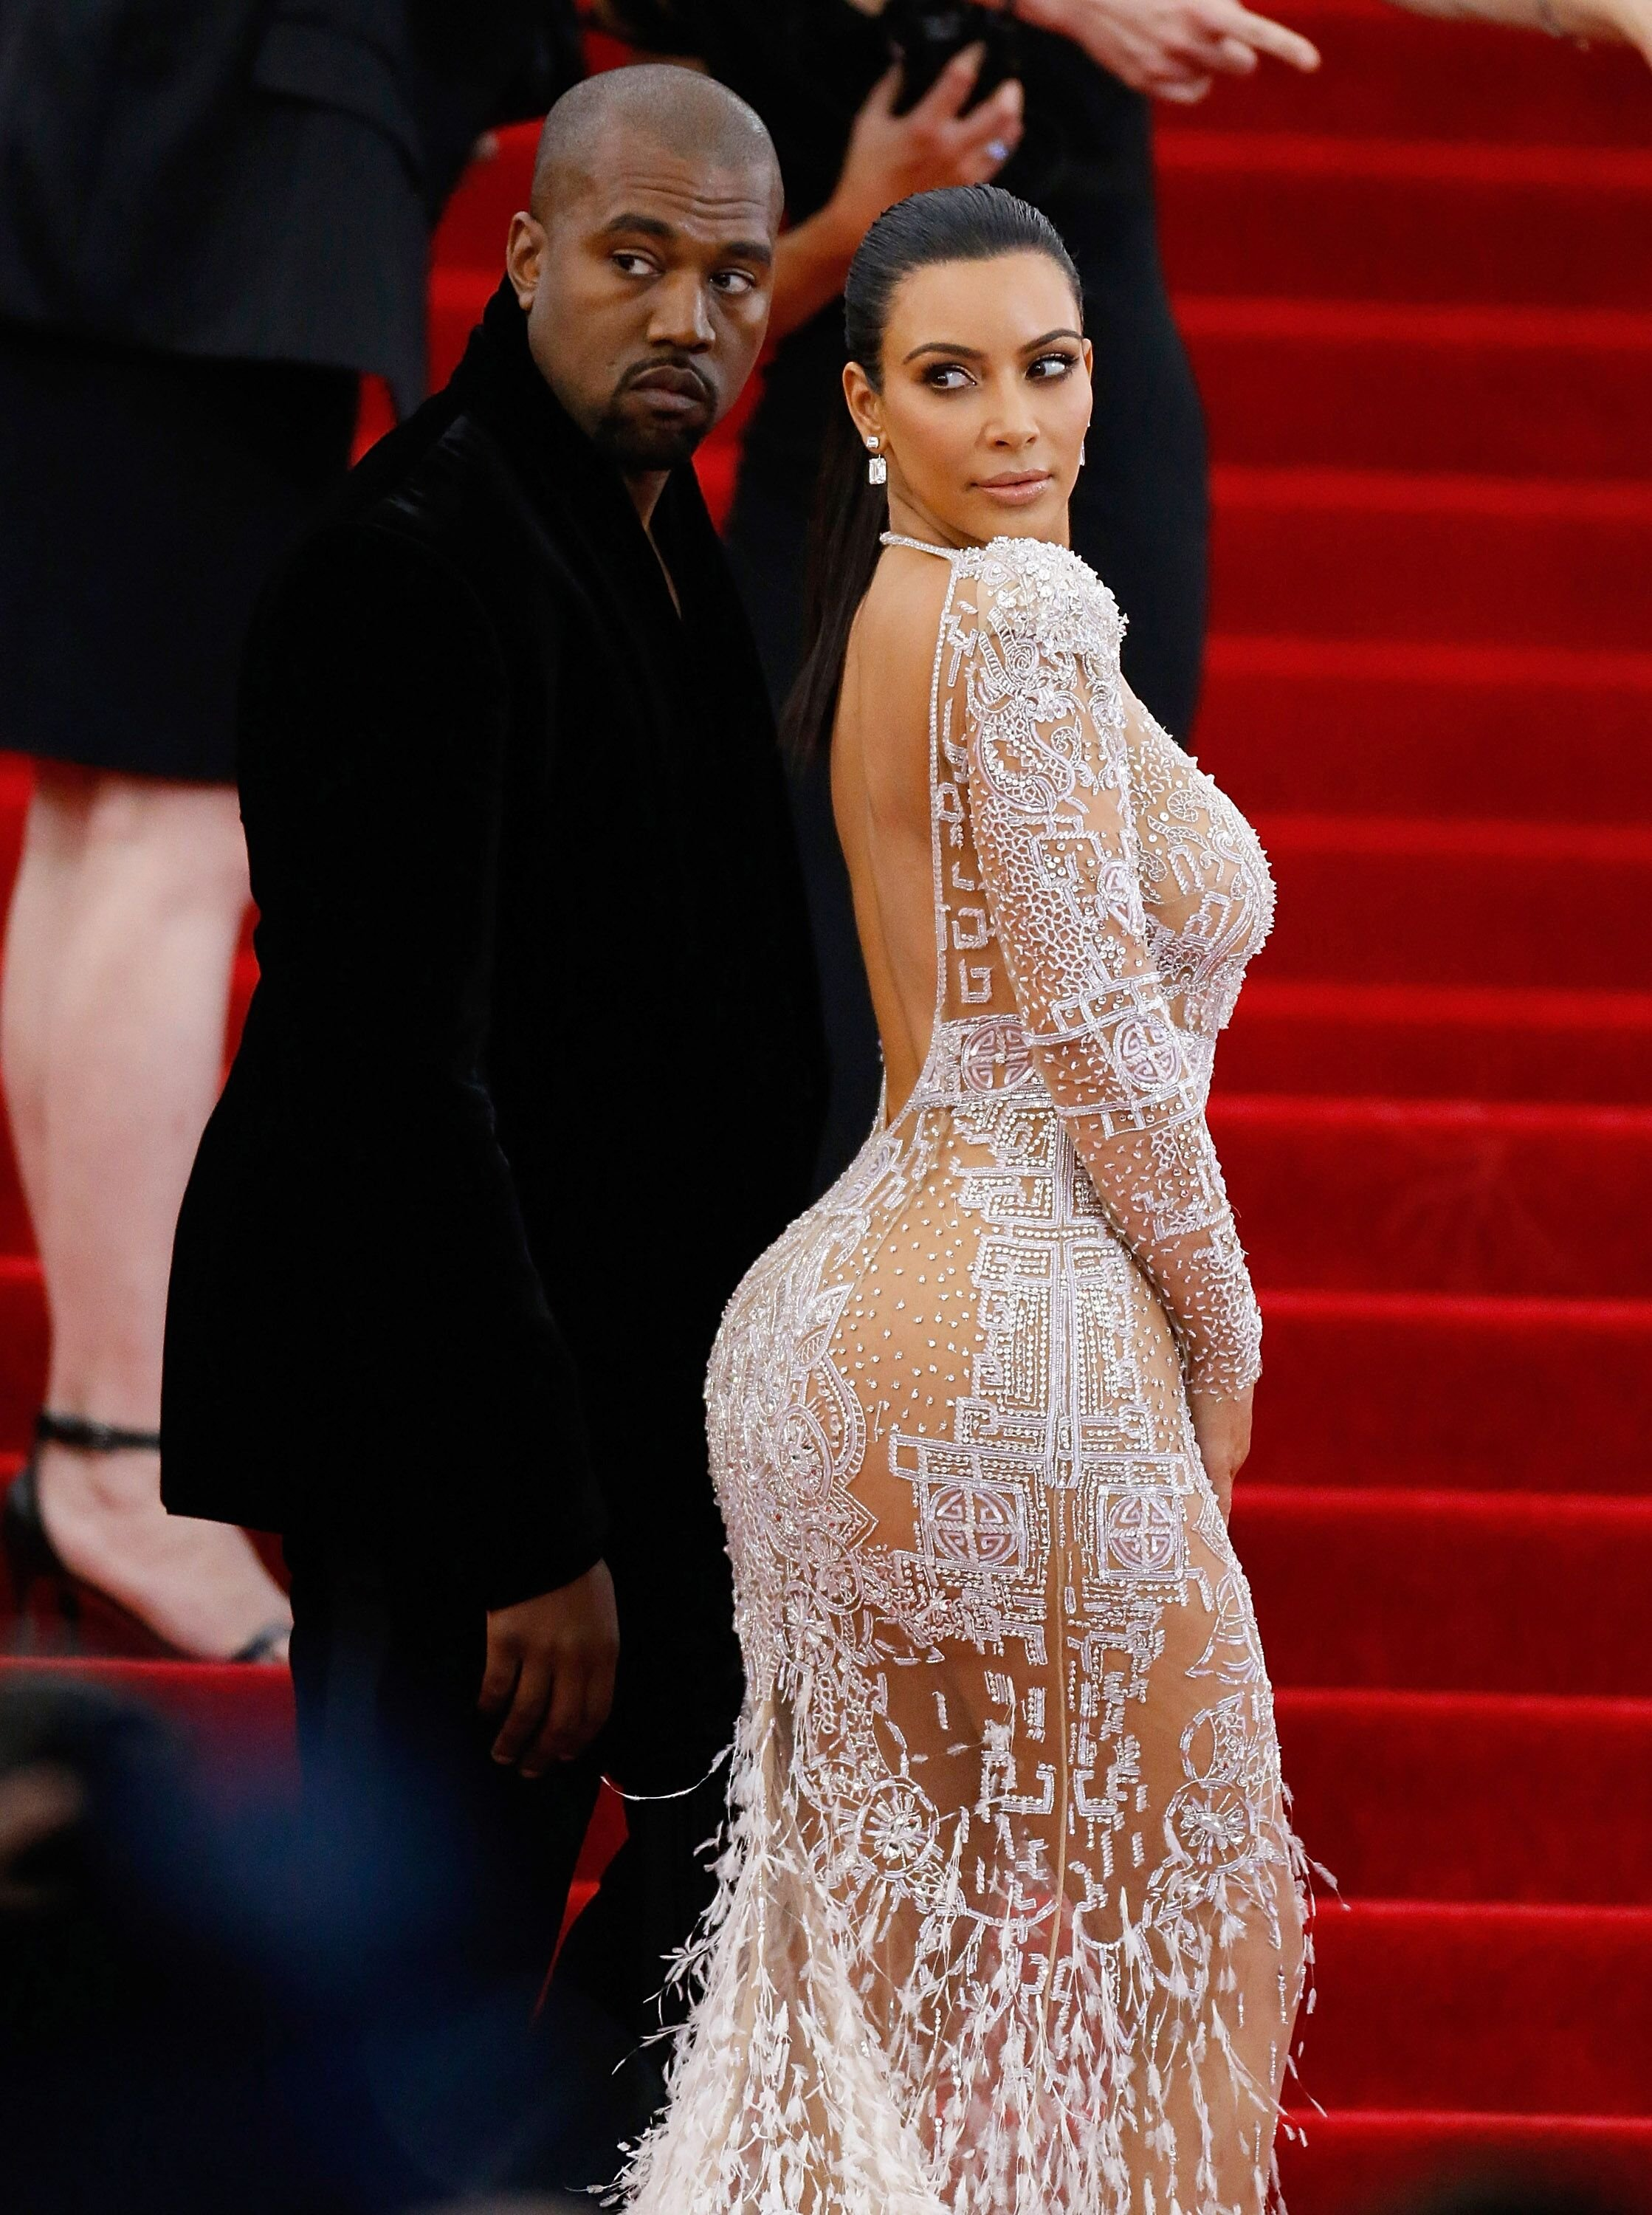 Kanye West & Kim Kardashian West at the Met Gala in 2015 in New York | Source: Getty Images